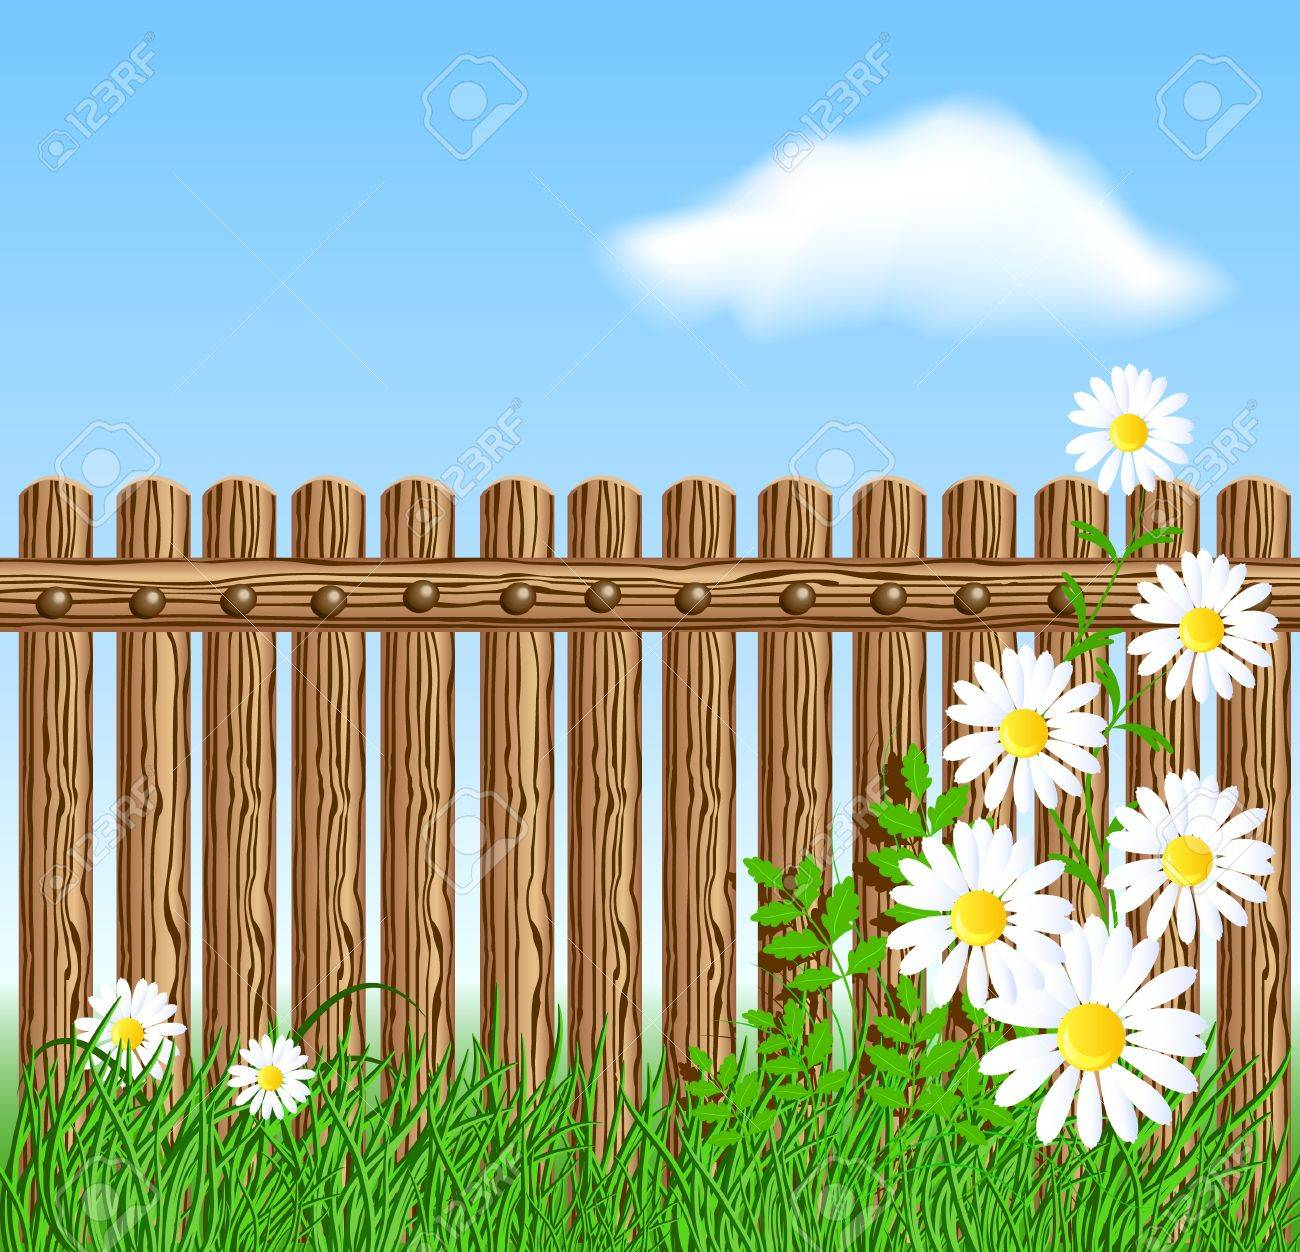 Wooden fence on green grass with daisy against the sky and clouds house - 18352861